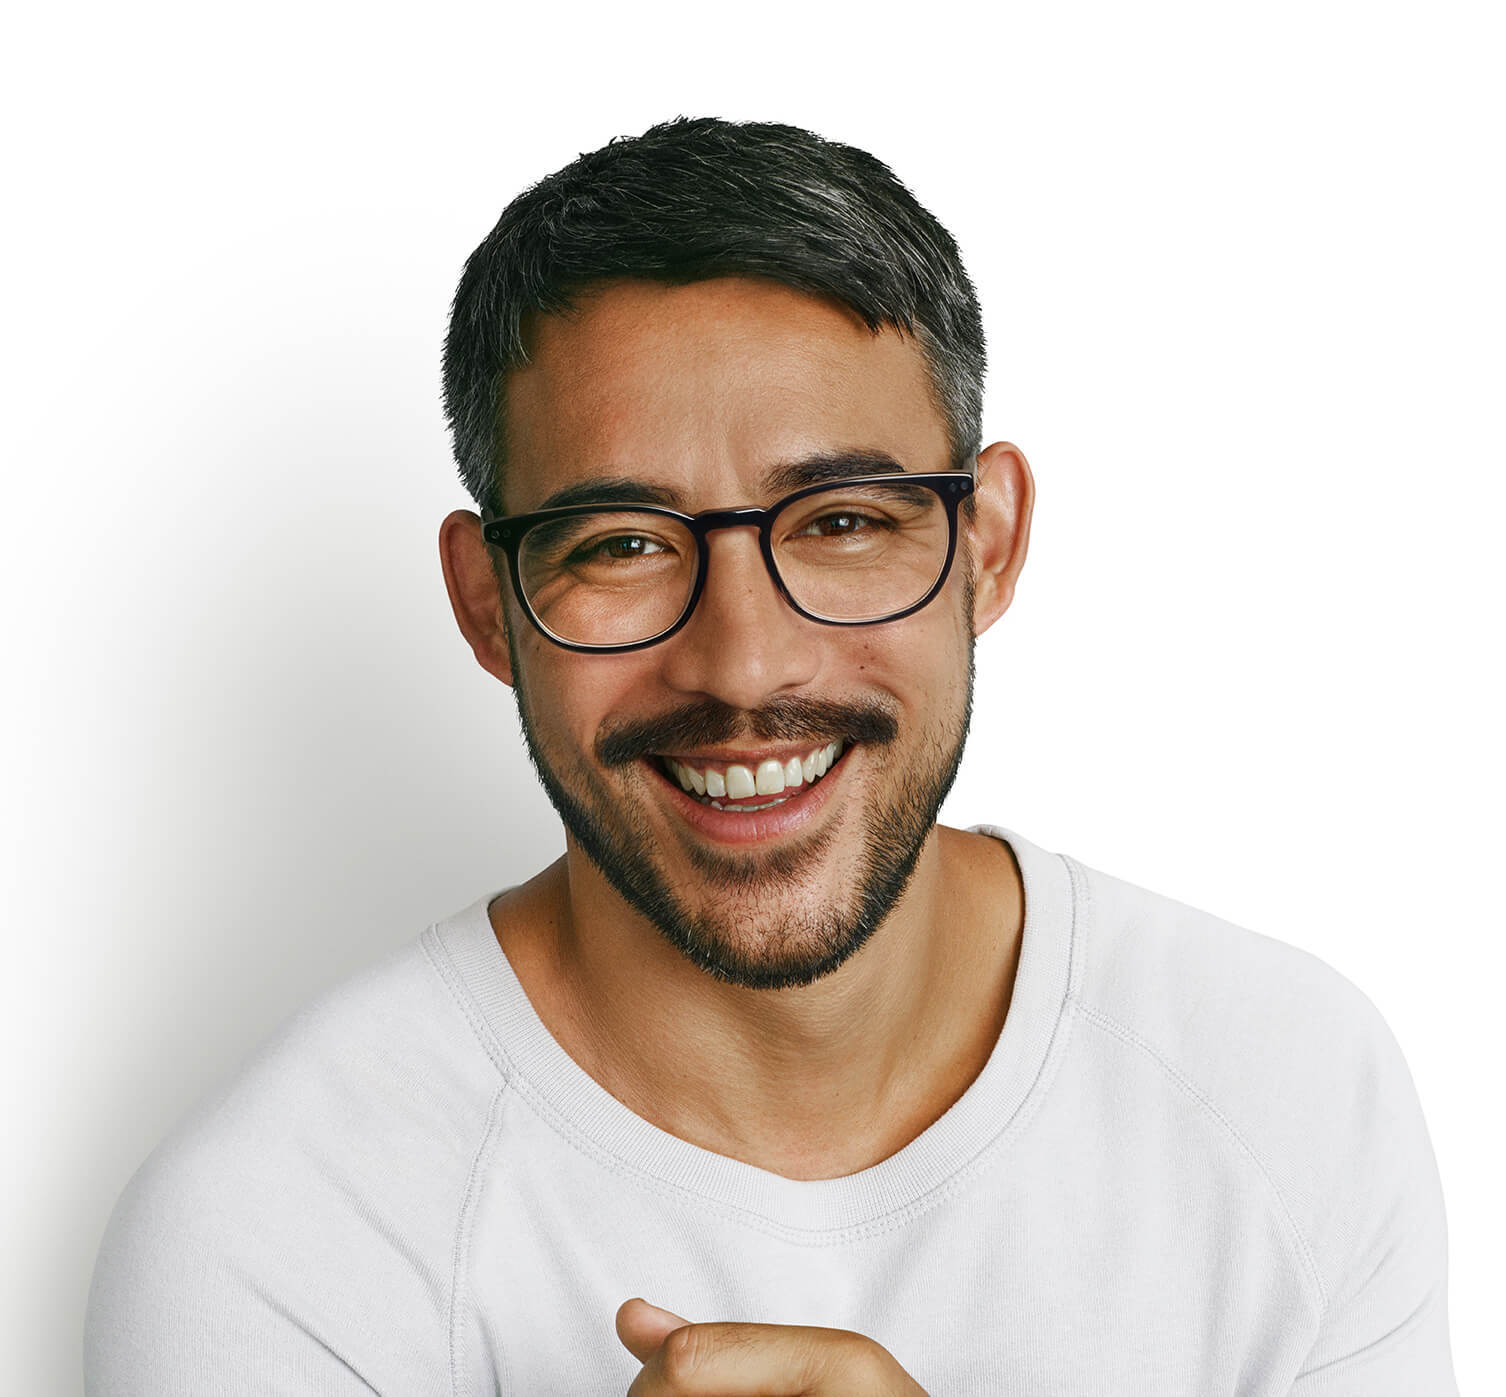 Mens Eyewear Trends 2020.Loveglasses Glasses And Style Trends Specsavers Australia